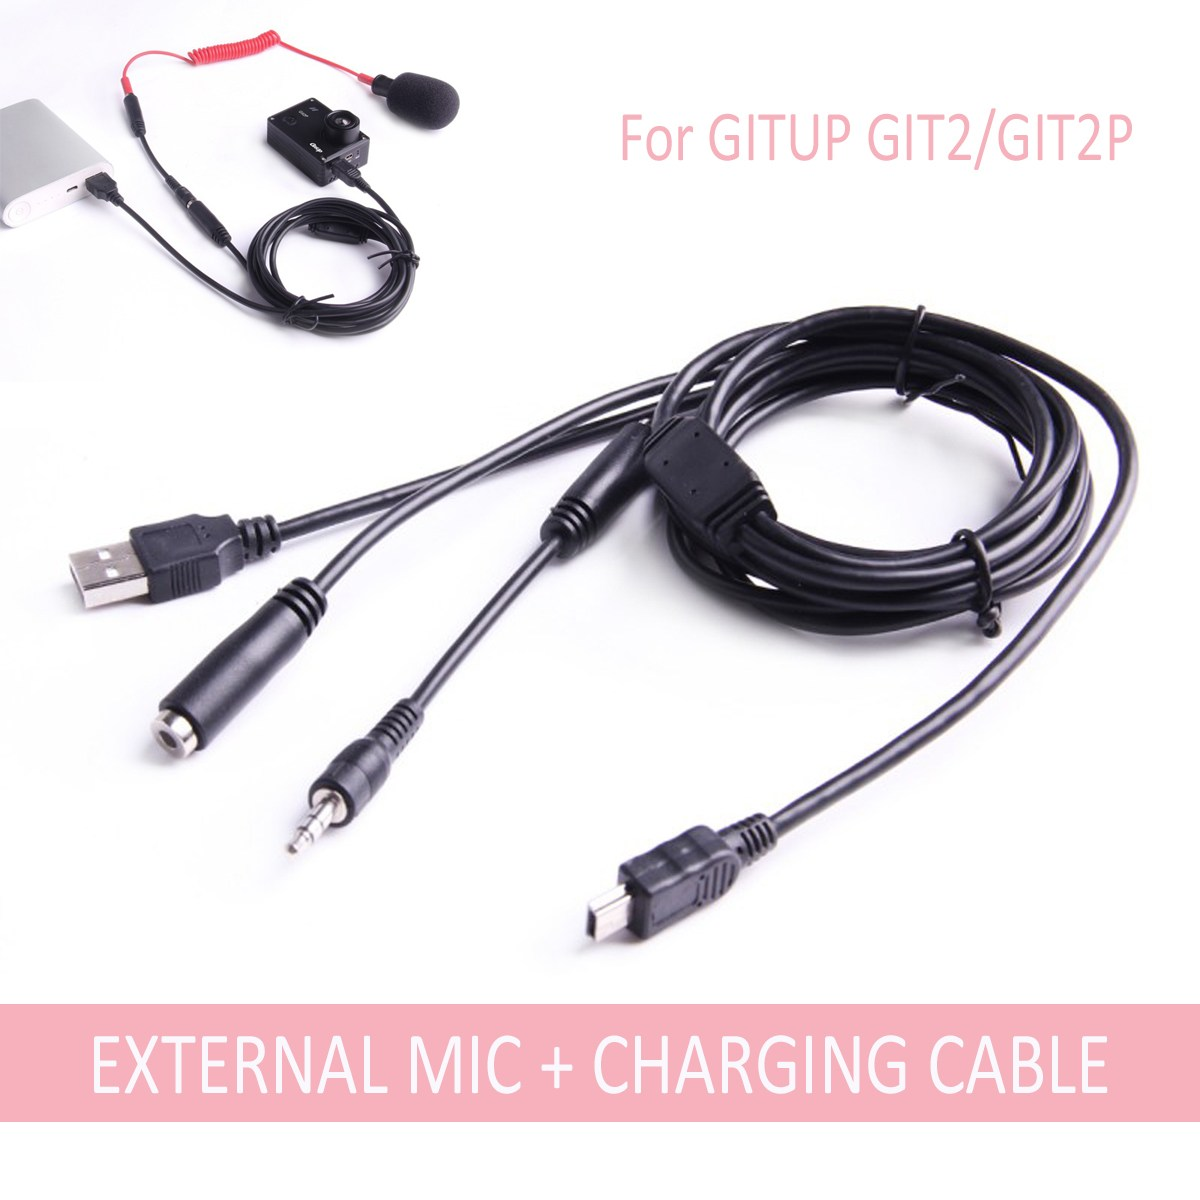 Mini USB 3.5mm External Microphone And Charging Cable For GITUP GIT2/GIT2P 2 in 1 Charge Cable